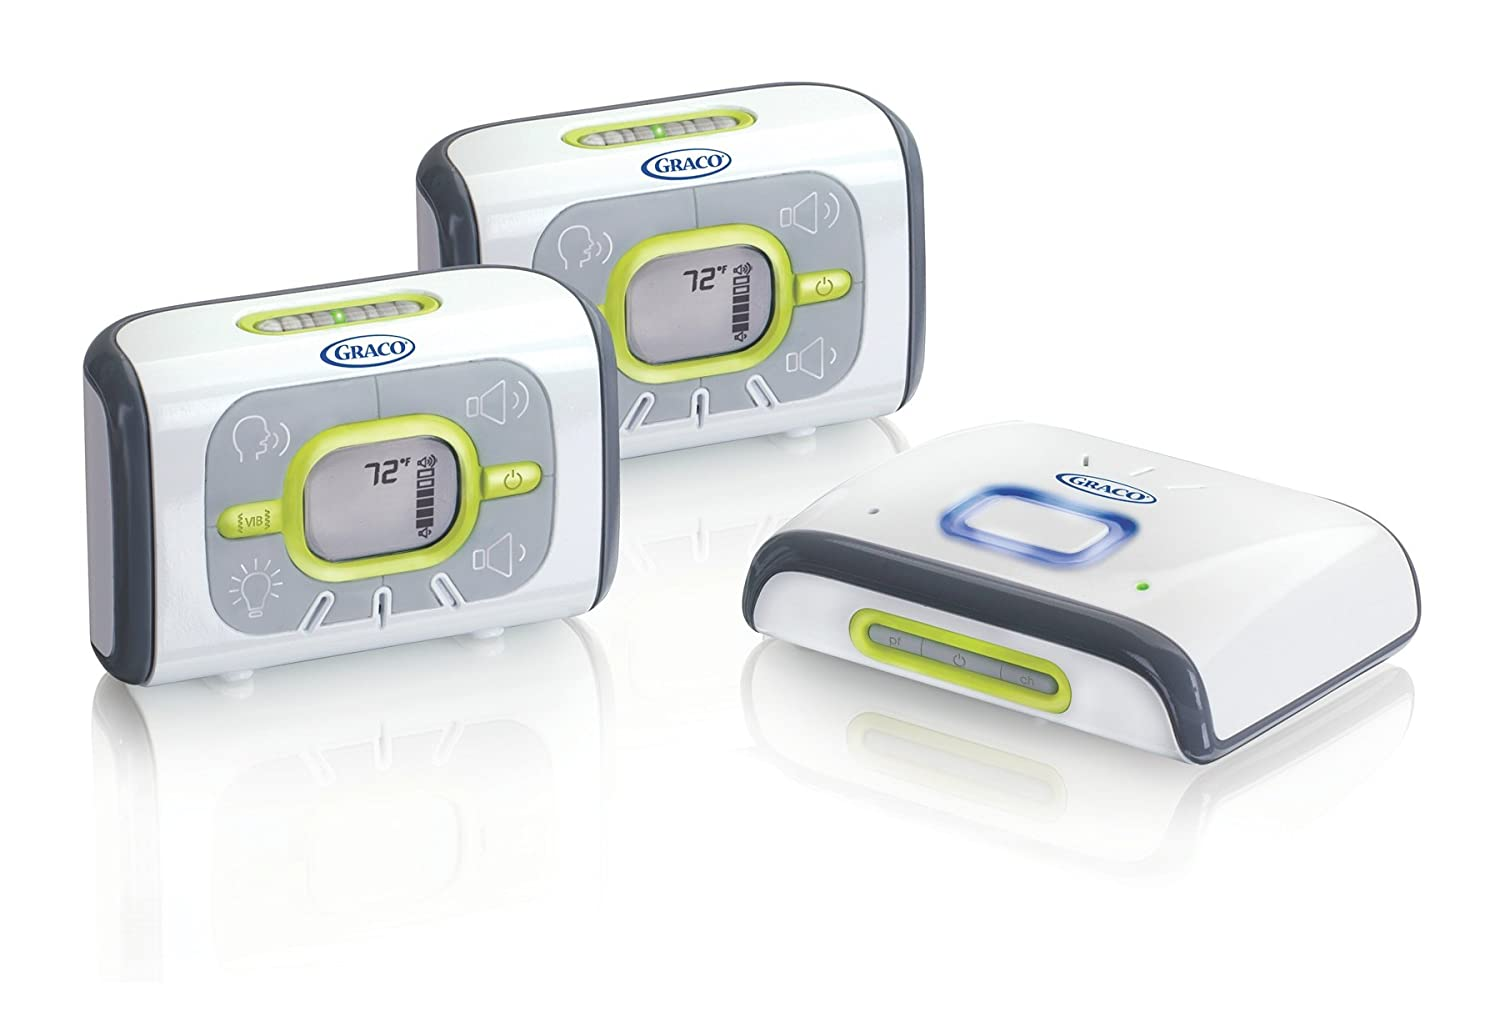 Graco Direct Connect Digital Baby Monitor